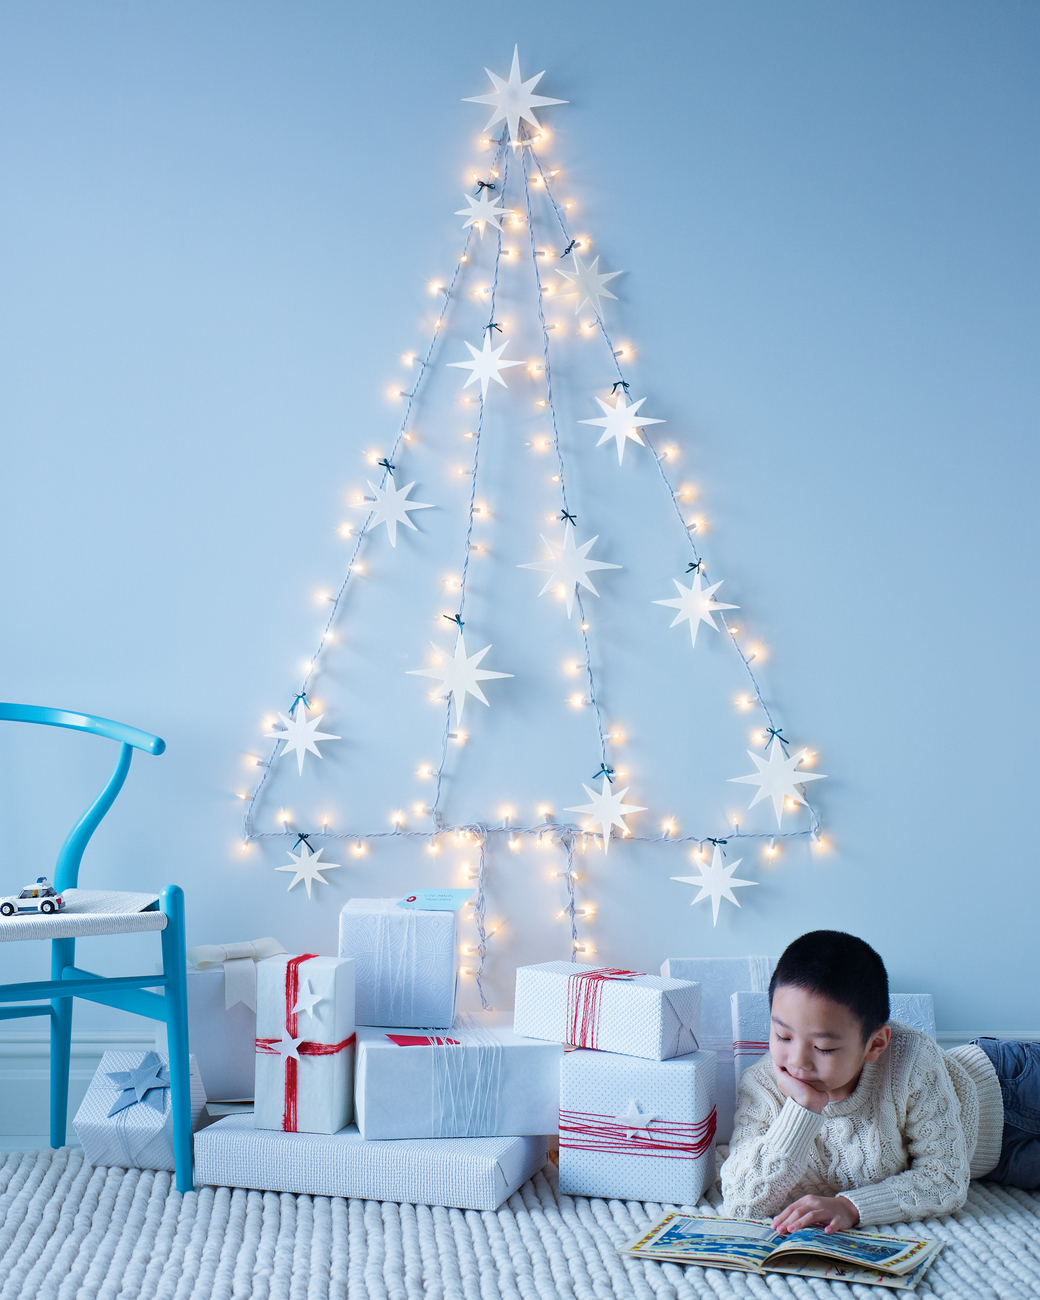 A DIY Christmas tree made from Christmas lights as seen on Martha Stewart.